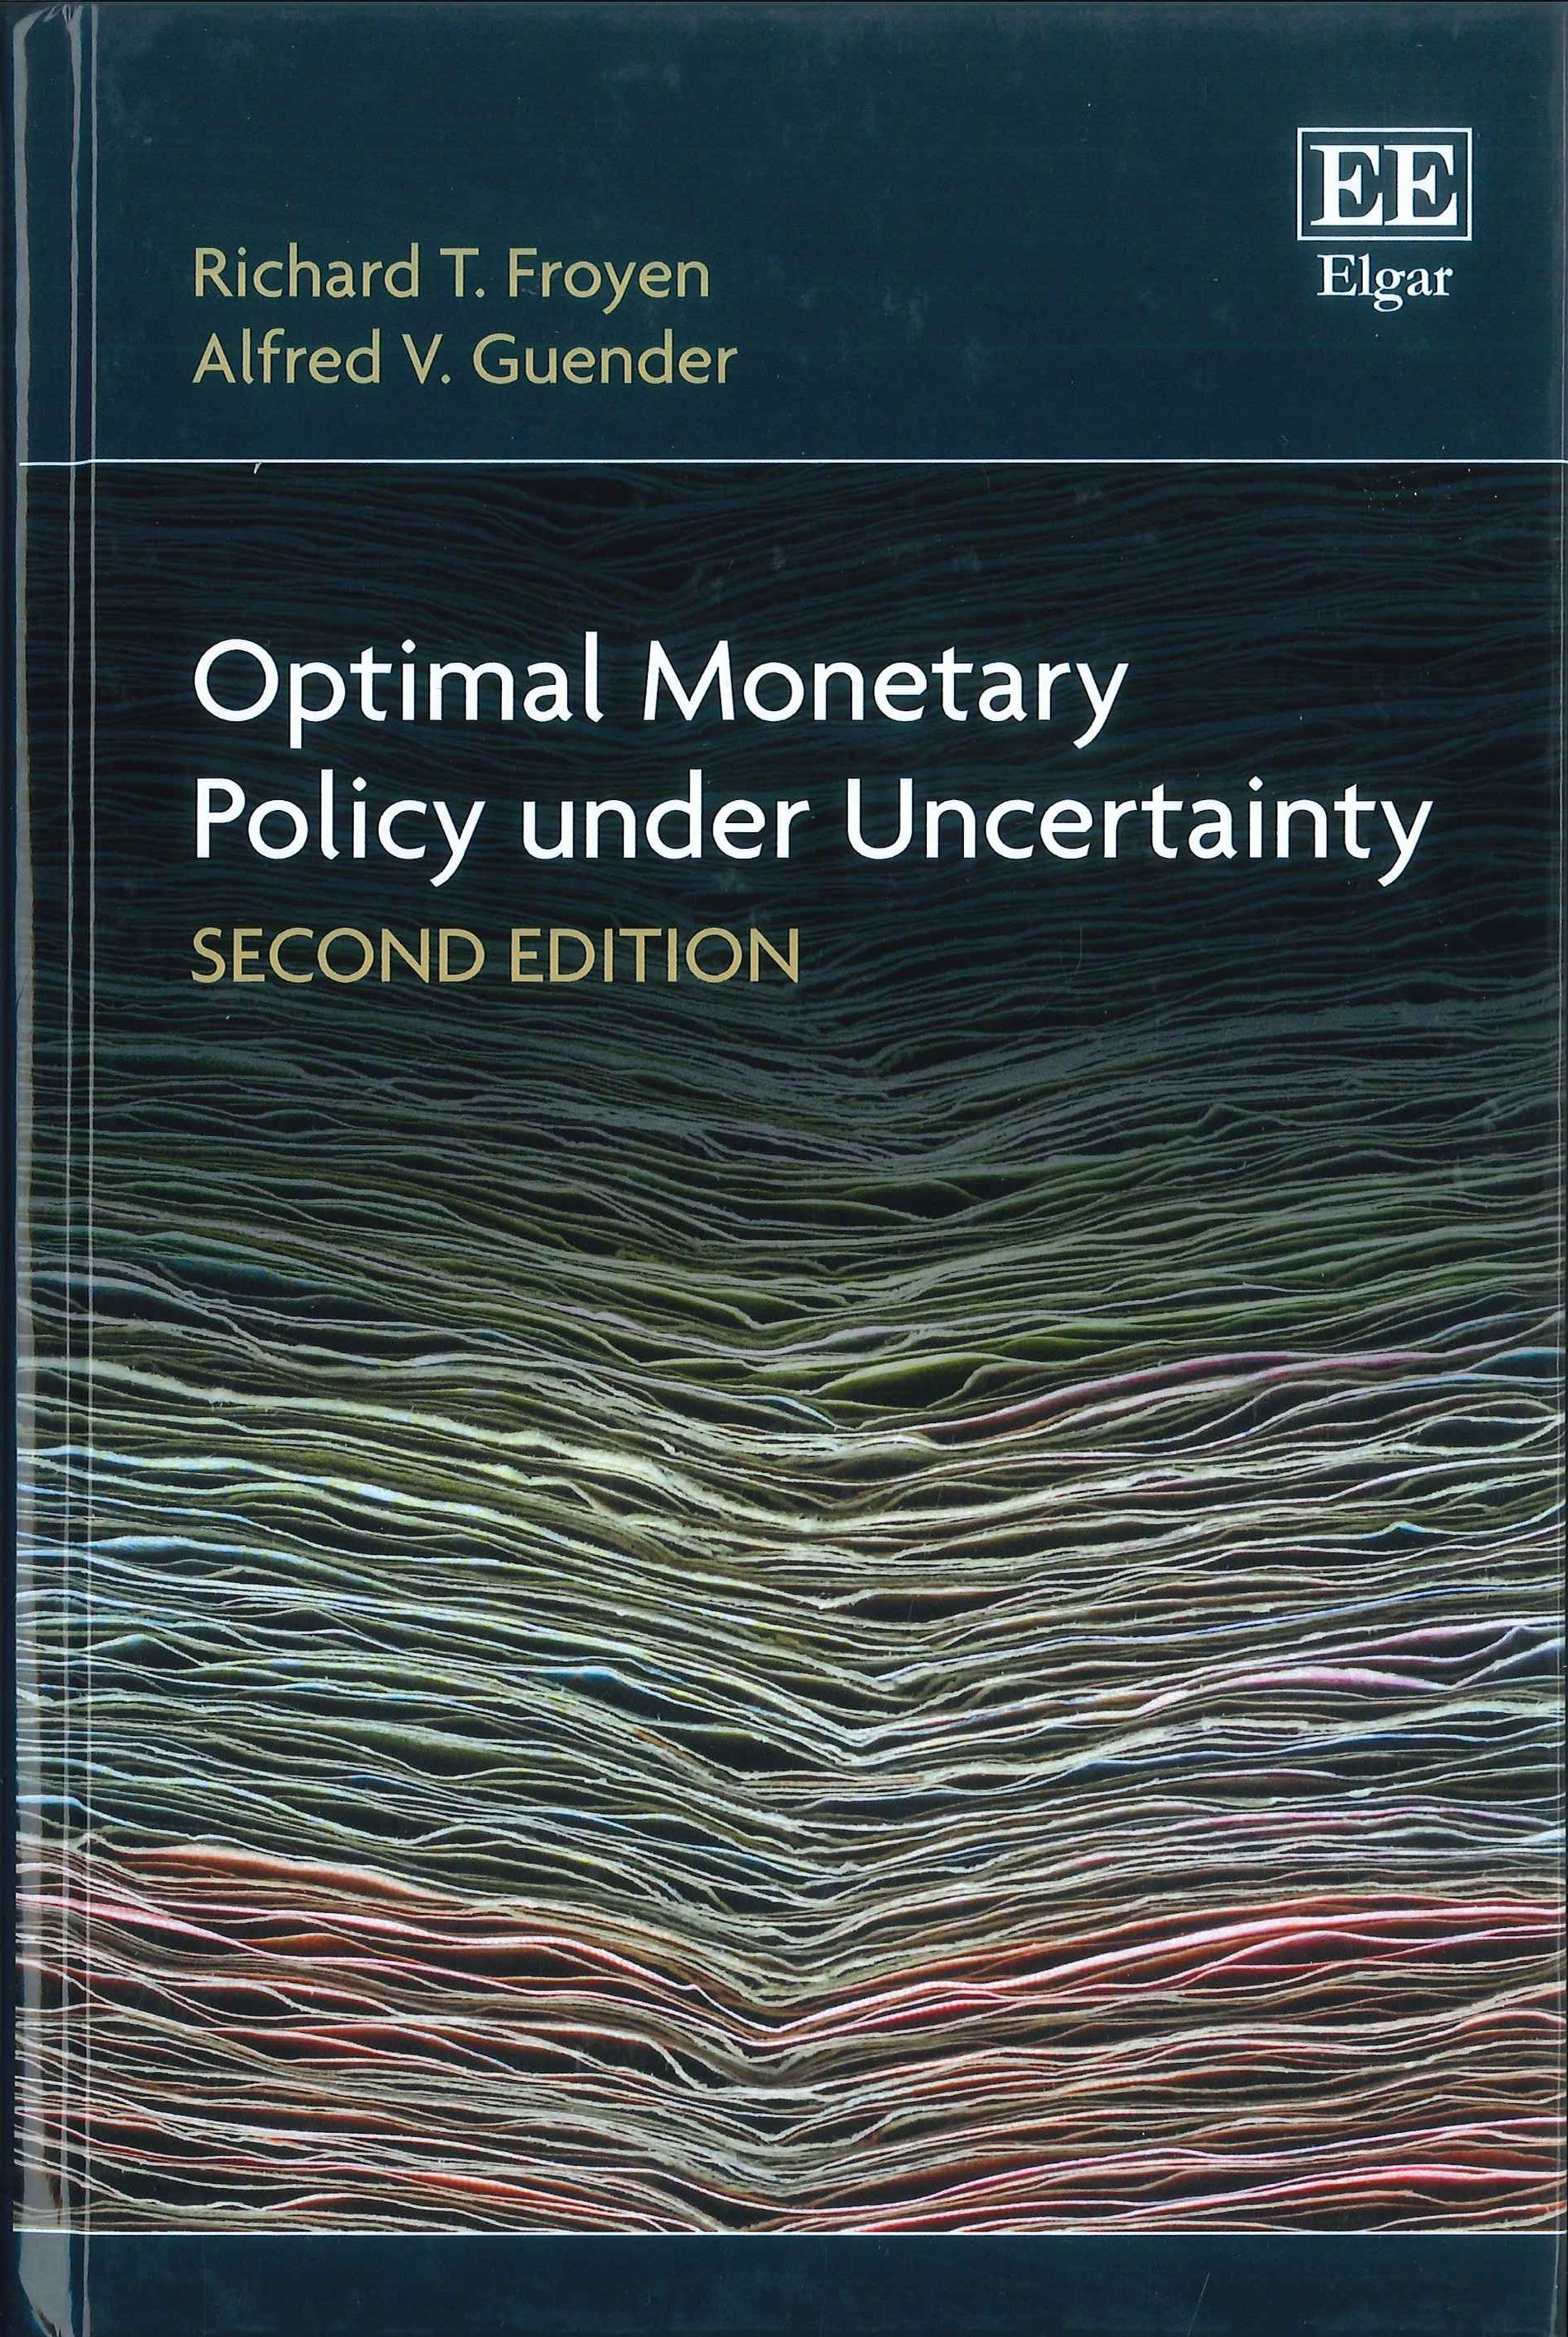 Optimal monetary policy under uncertainty